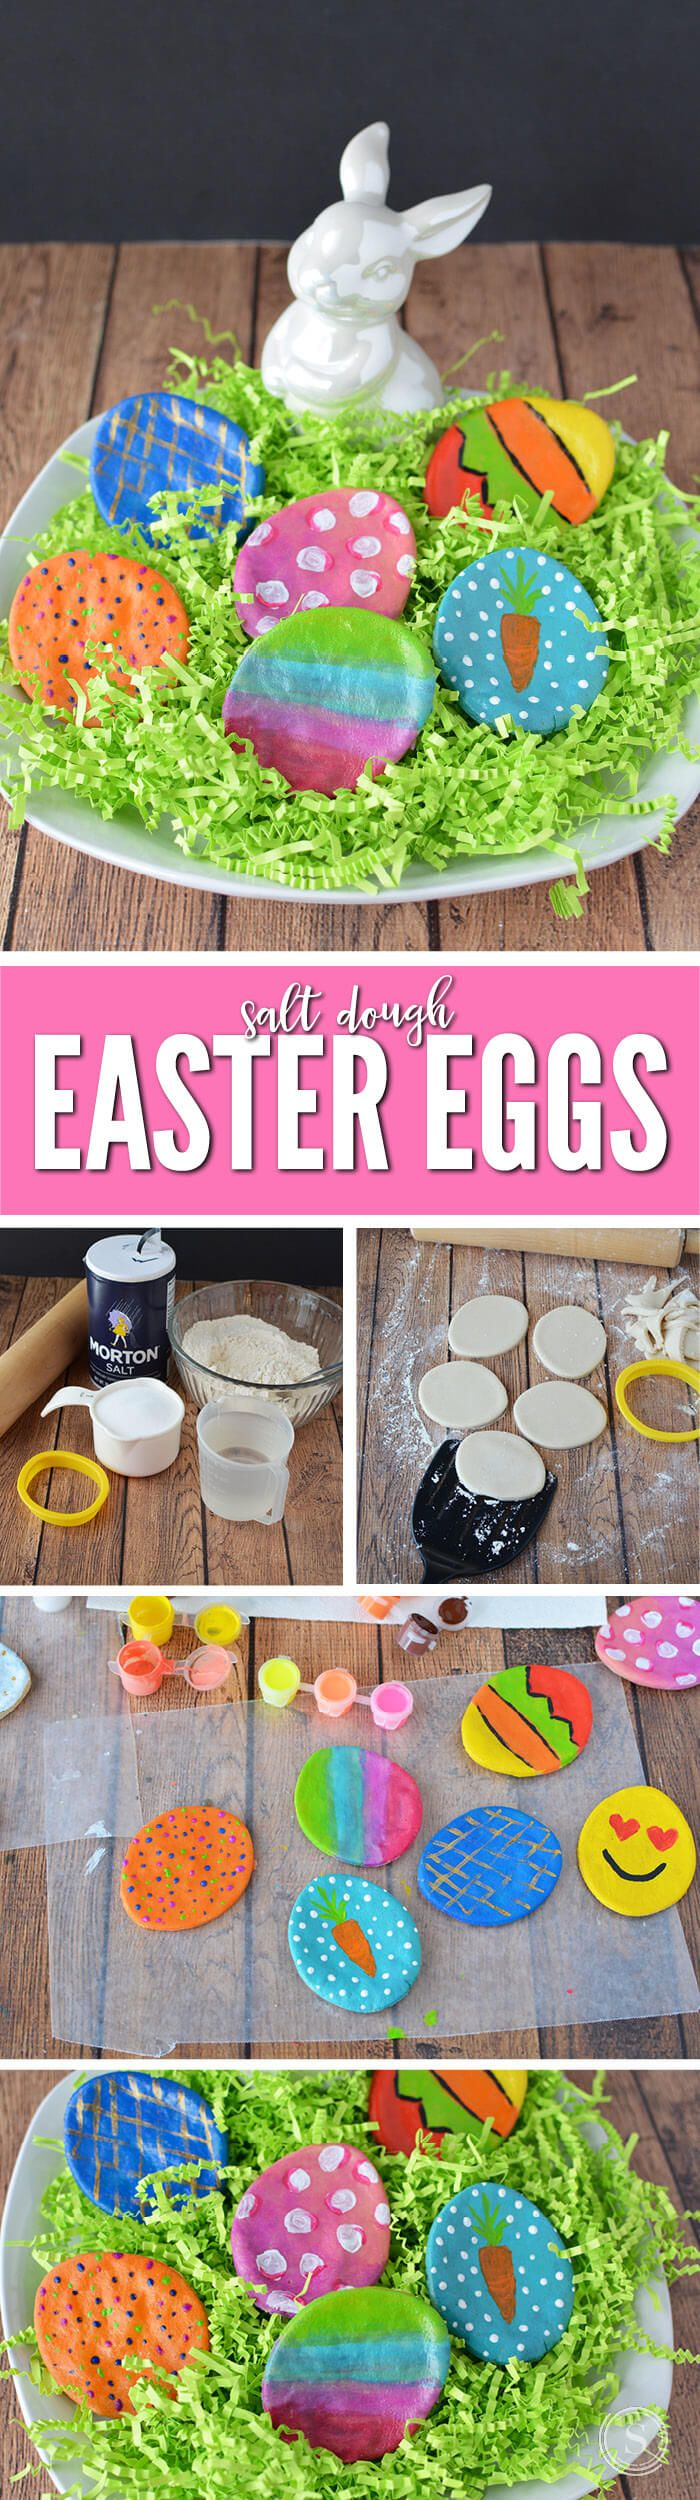 Salt Dough Easter Eggs for Kids! A fun way to decorate eggs for Easter! Easter Crafts and Activities that are kid friendly and super easy!